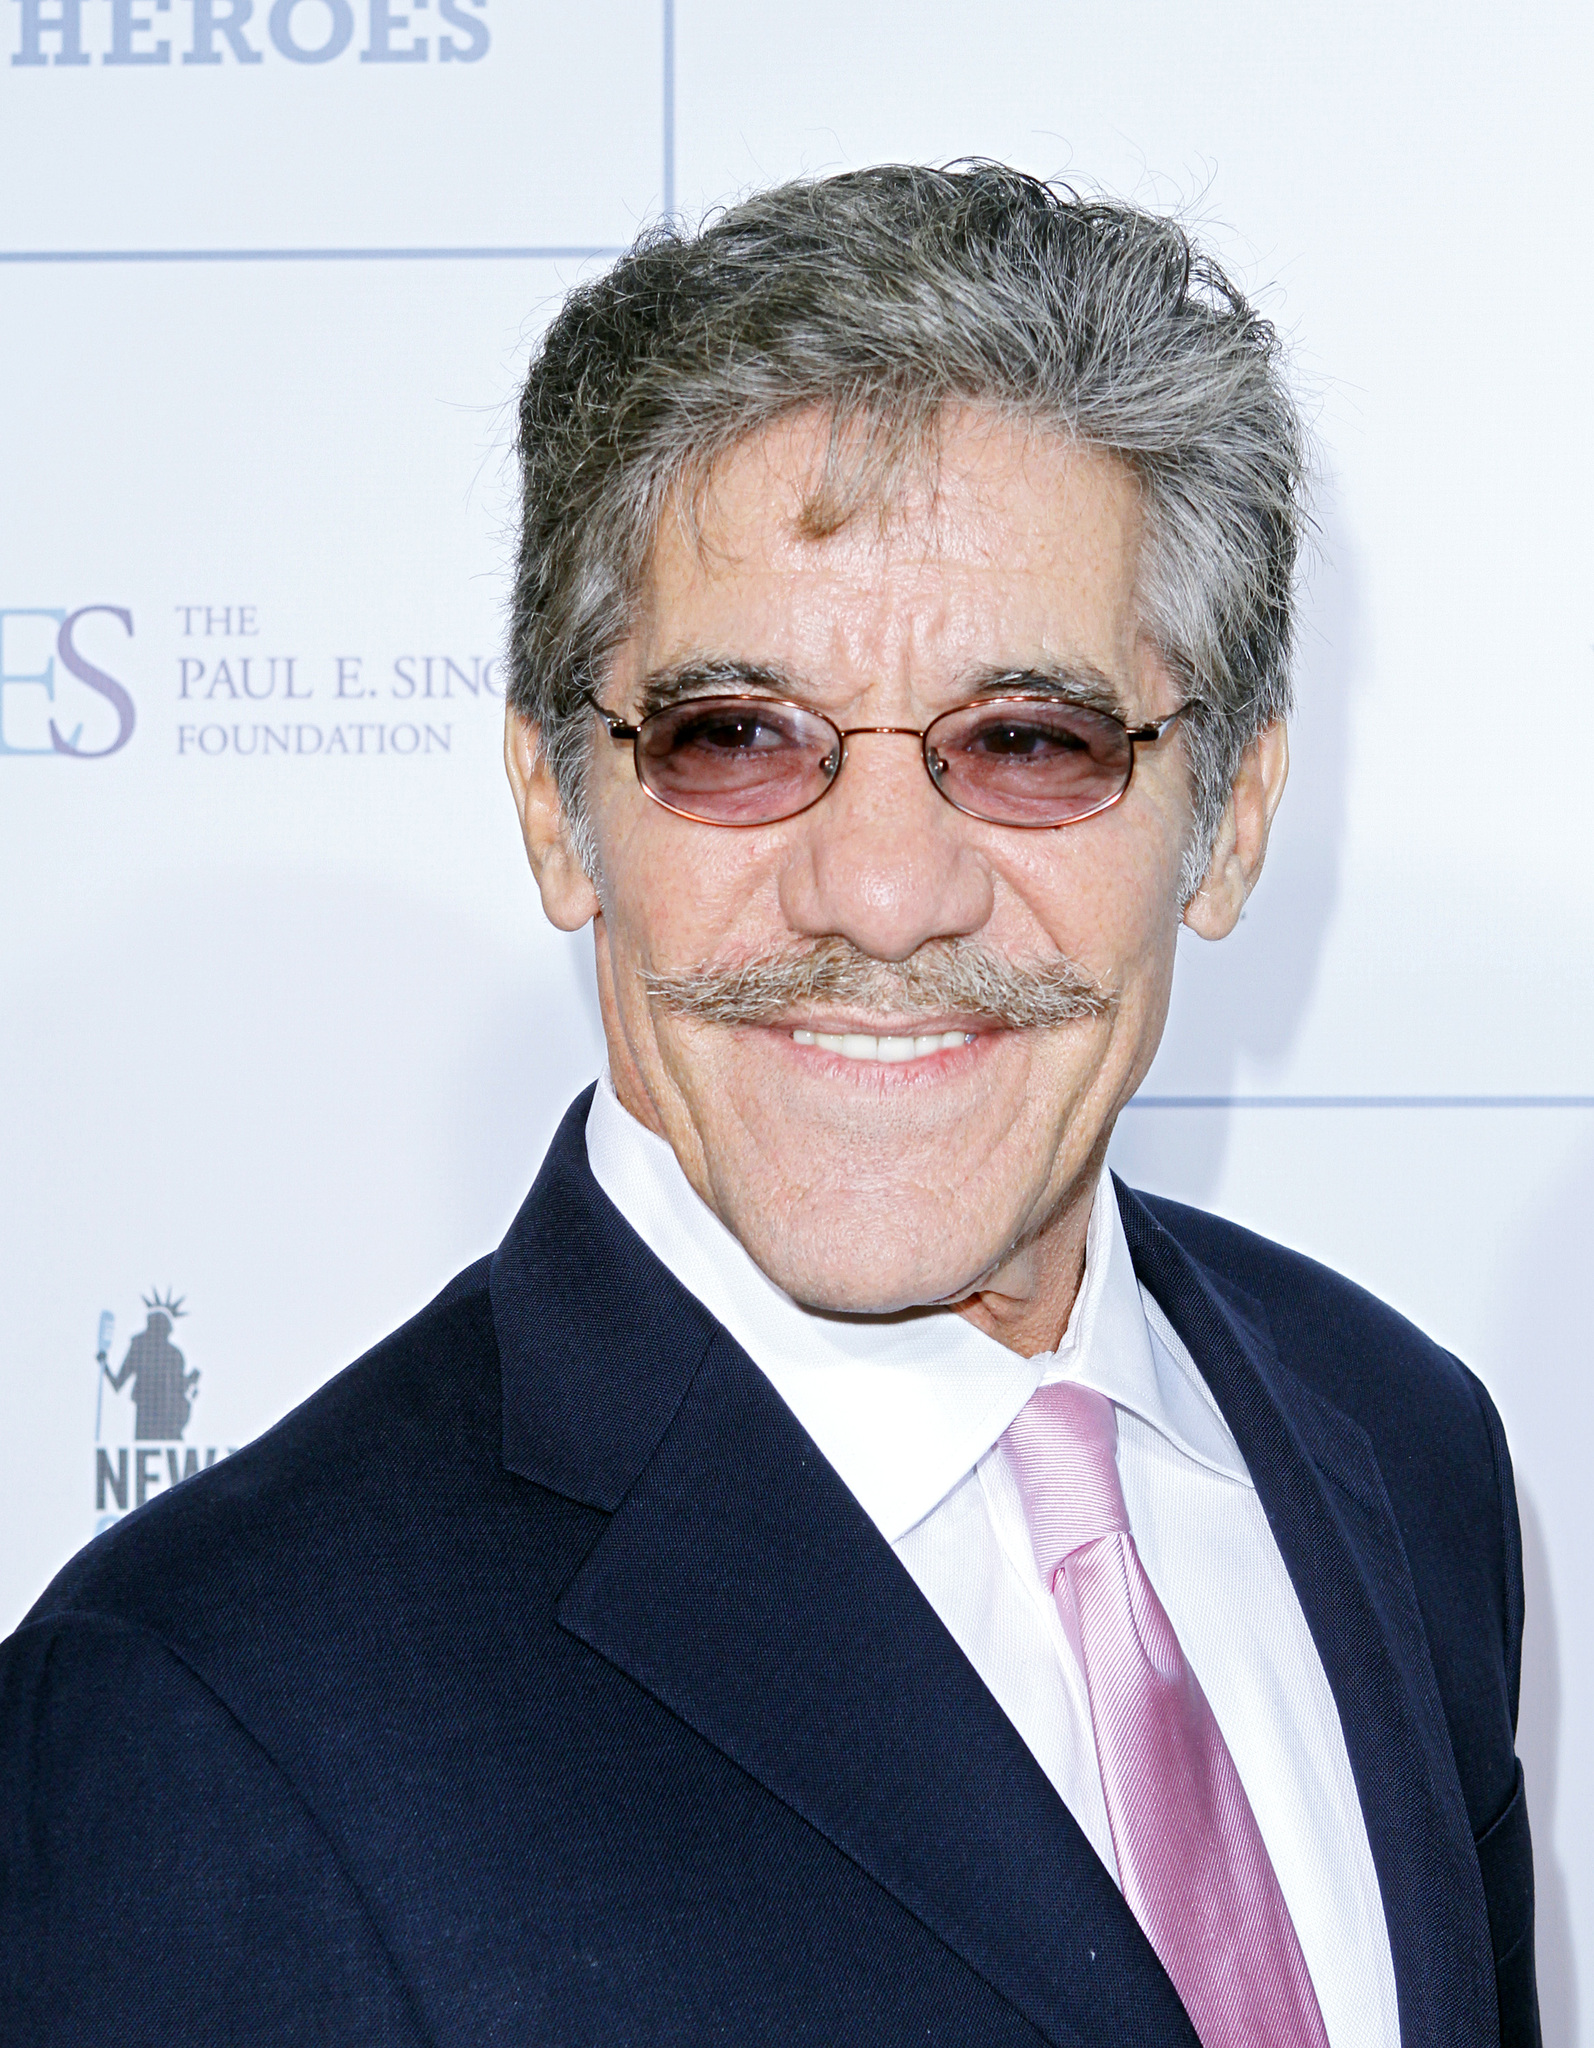 The 76-year old son of father (?) and mother(?) Geraldo Rivera in 2020 photo. Geraldo Rivera earned a million dollar salary - leaving the net worth at million in 2020